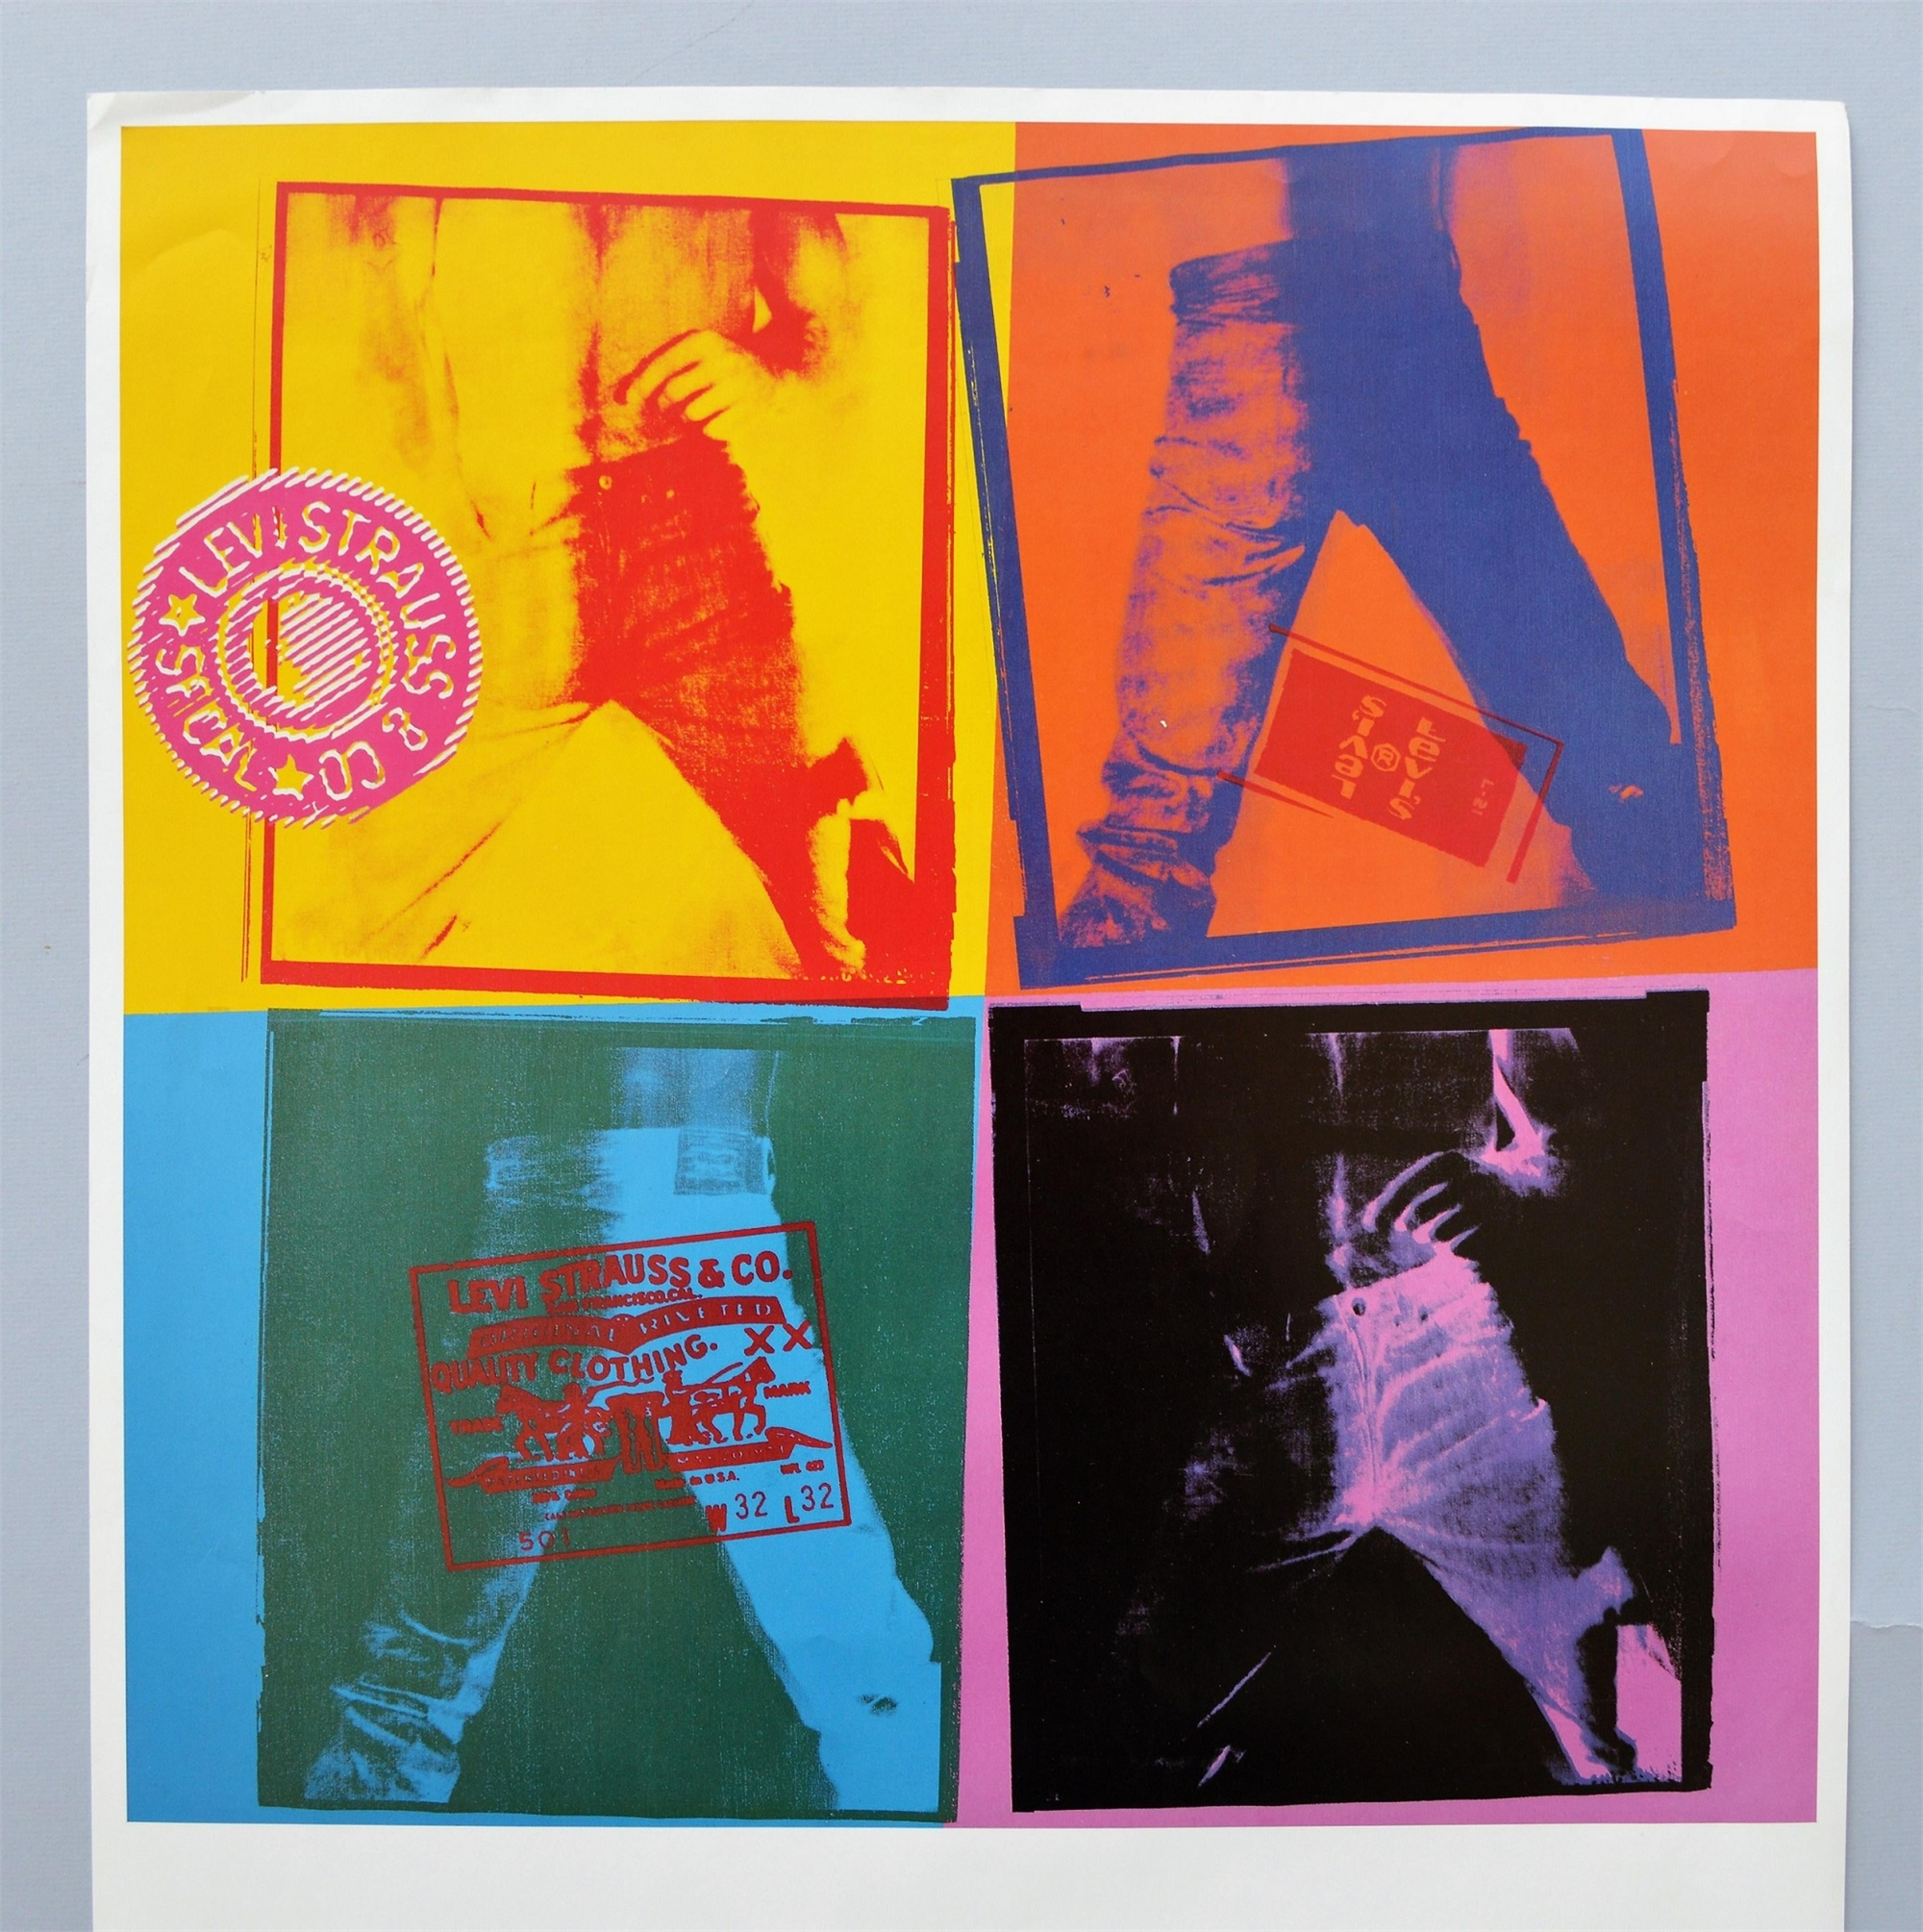 Levi's 501 Jeans by Andy Warhol